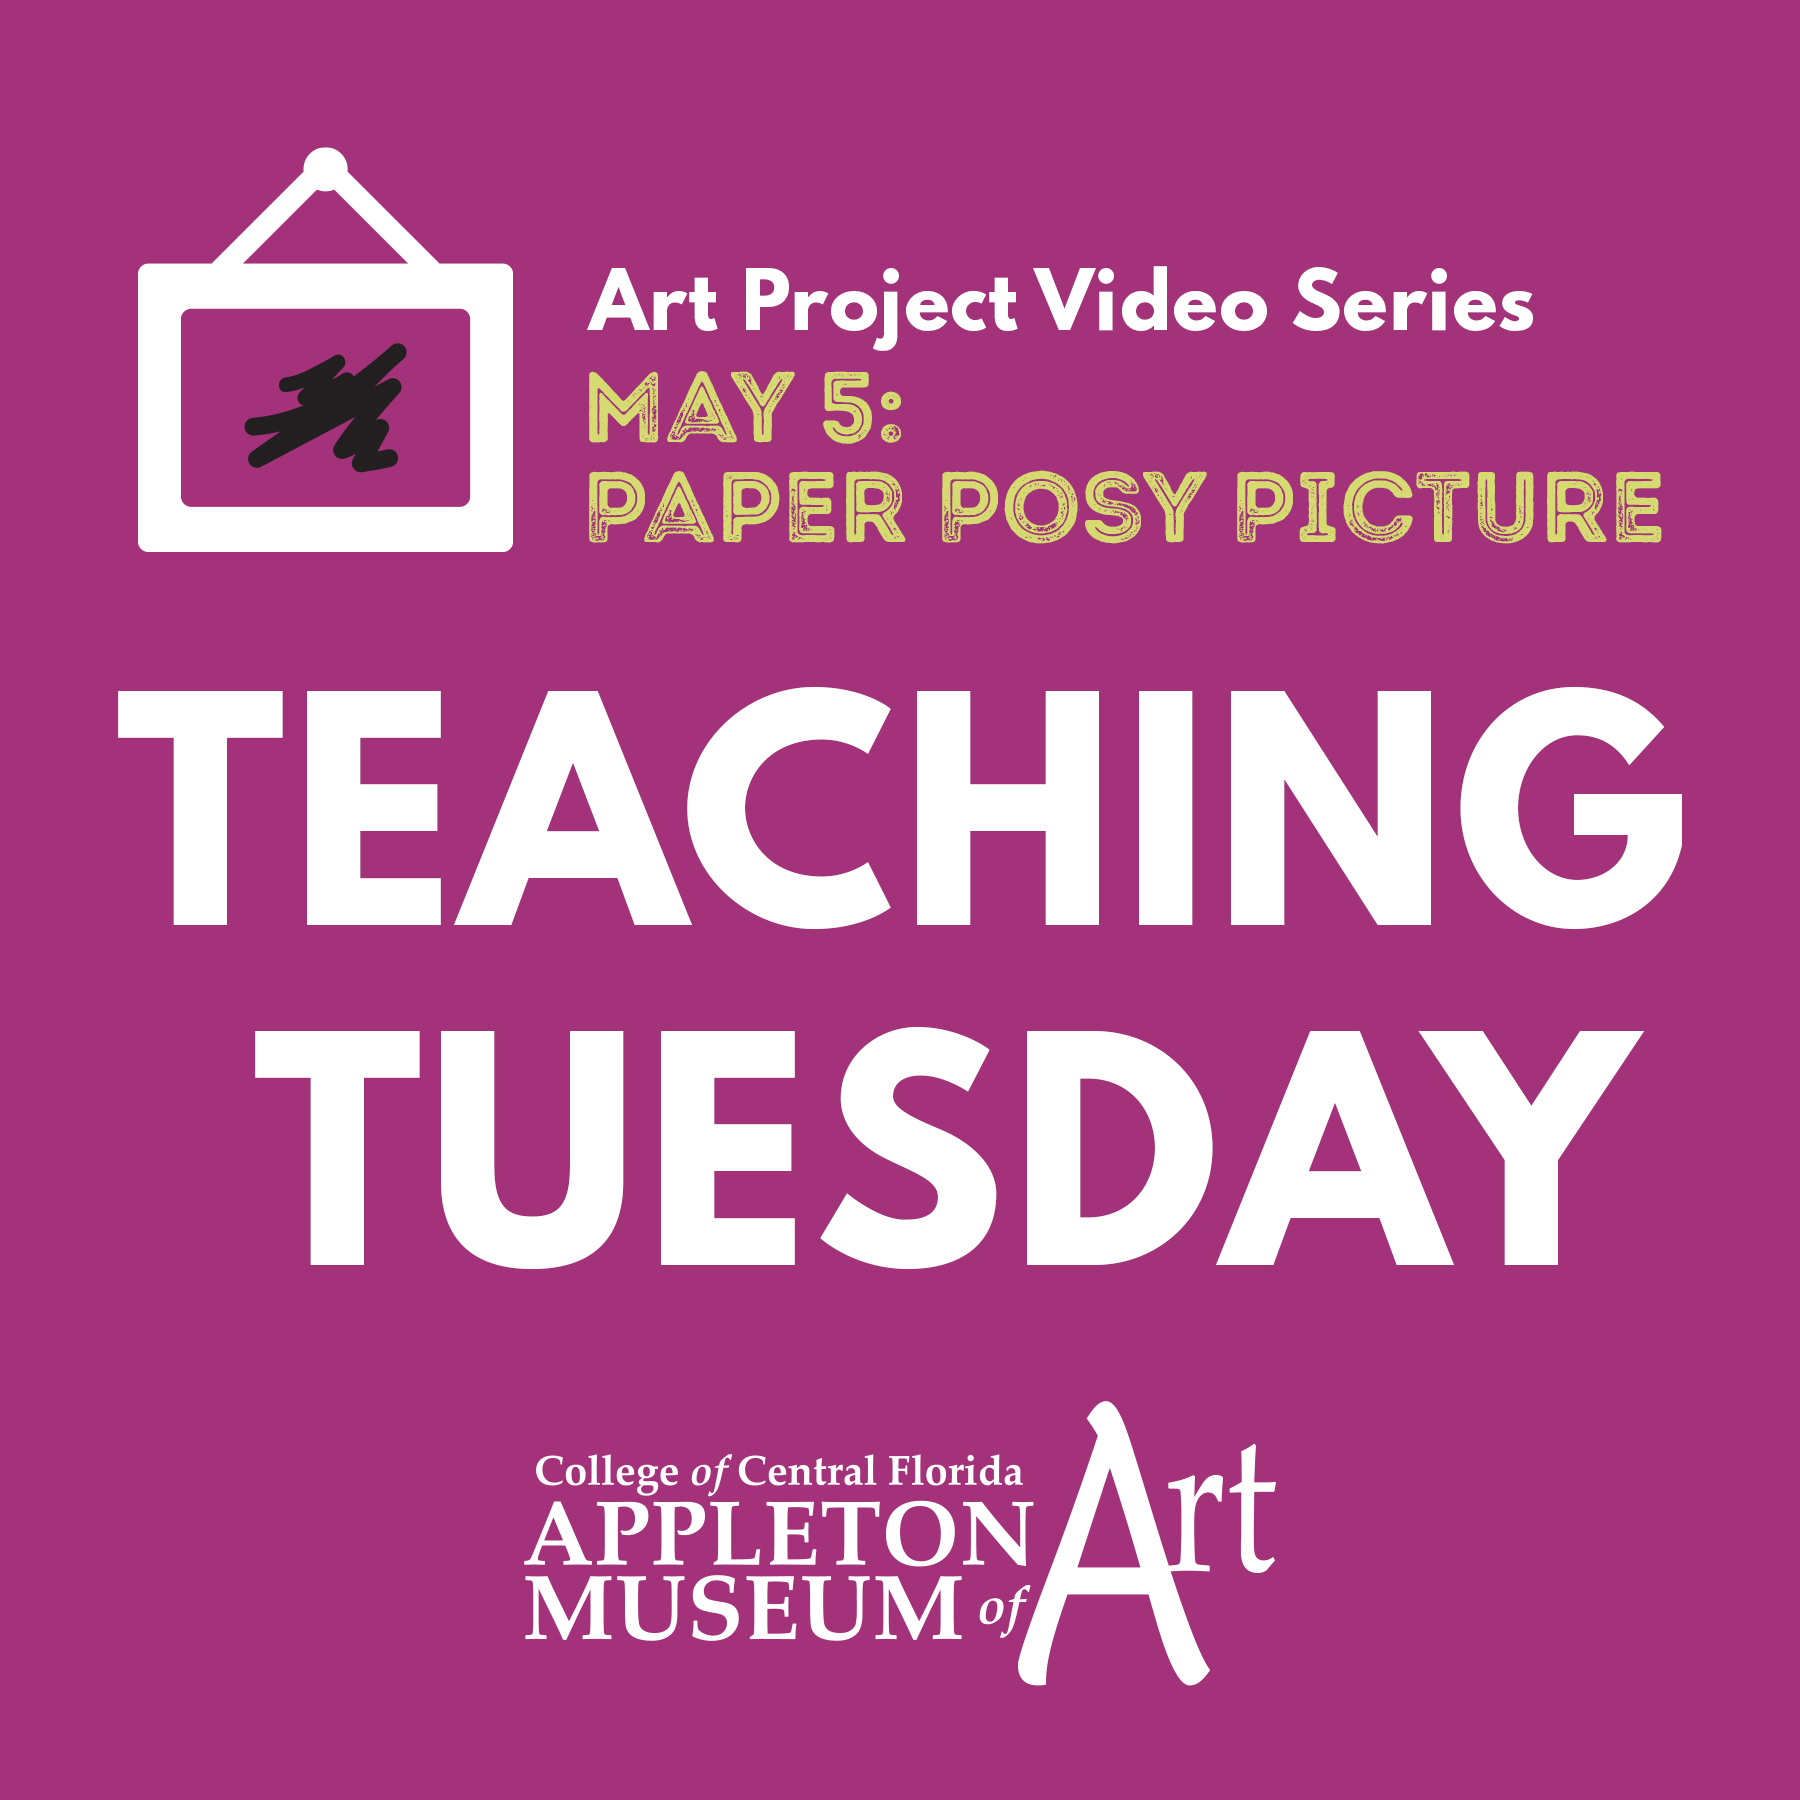 Teaching Tuesday: Paper Posy Picture